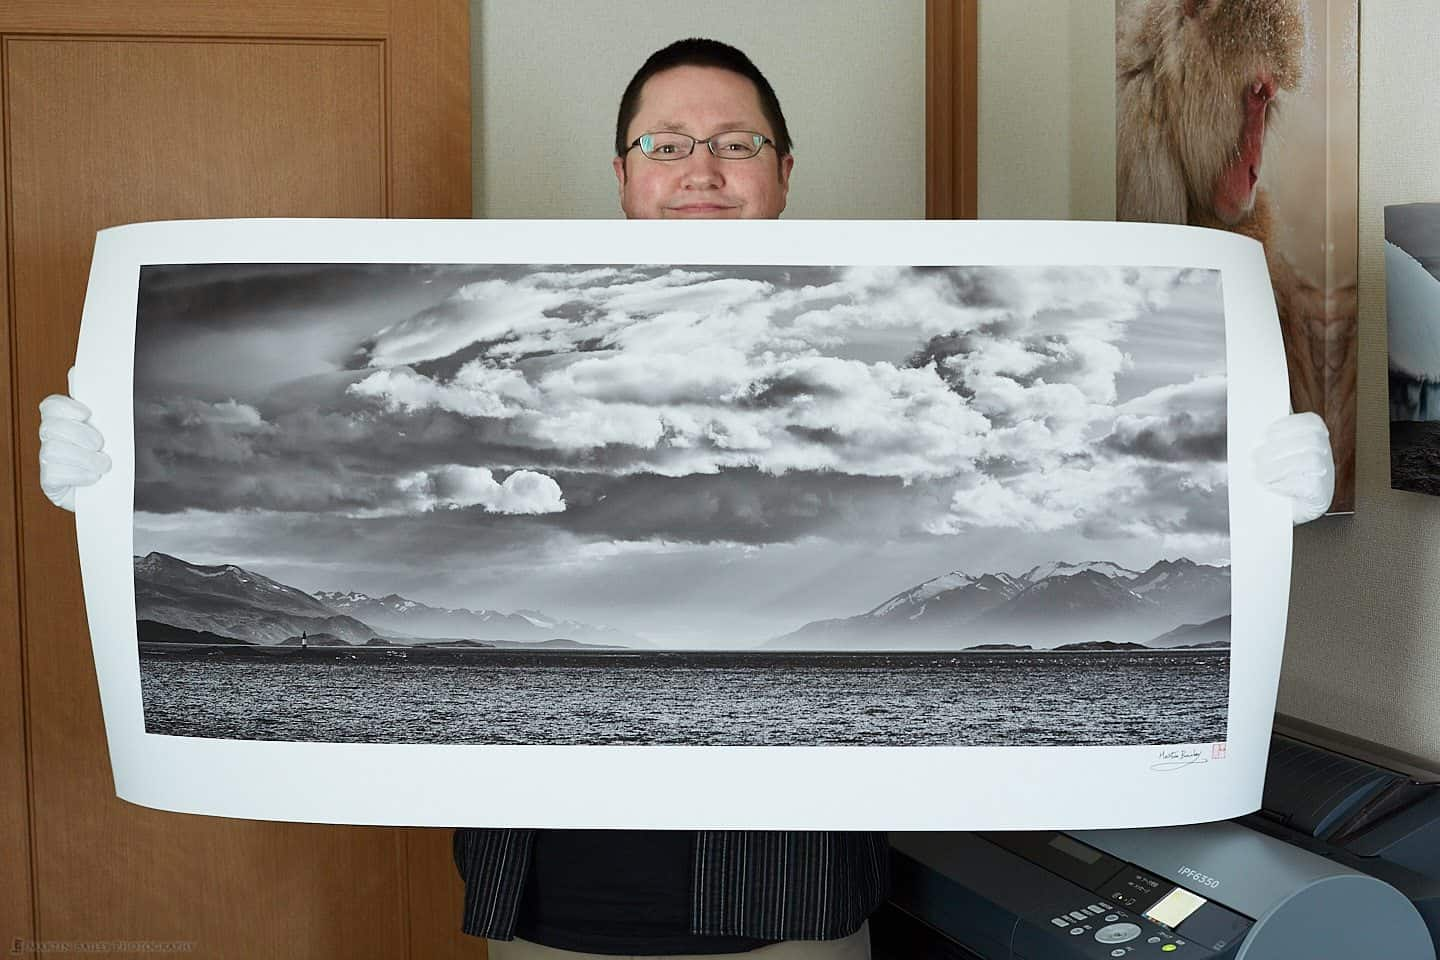 Martin with 2 x 4 Foot Print on Optica One